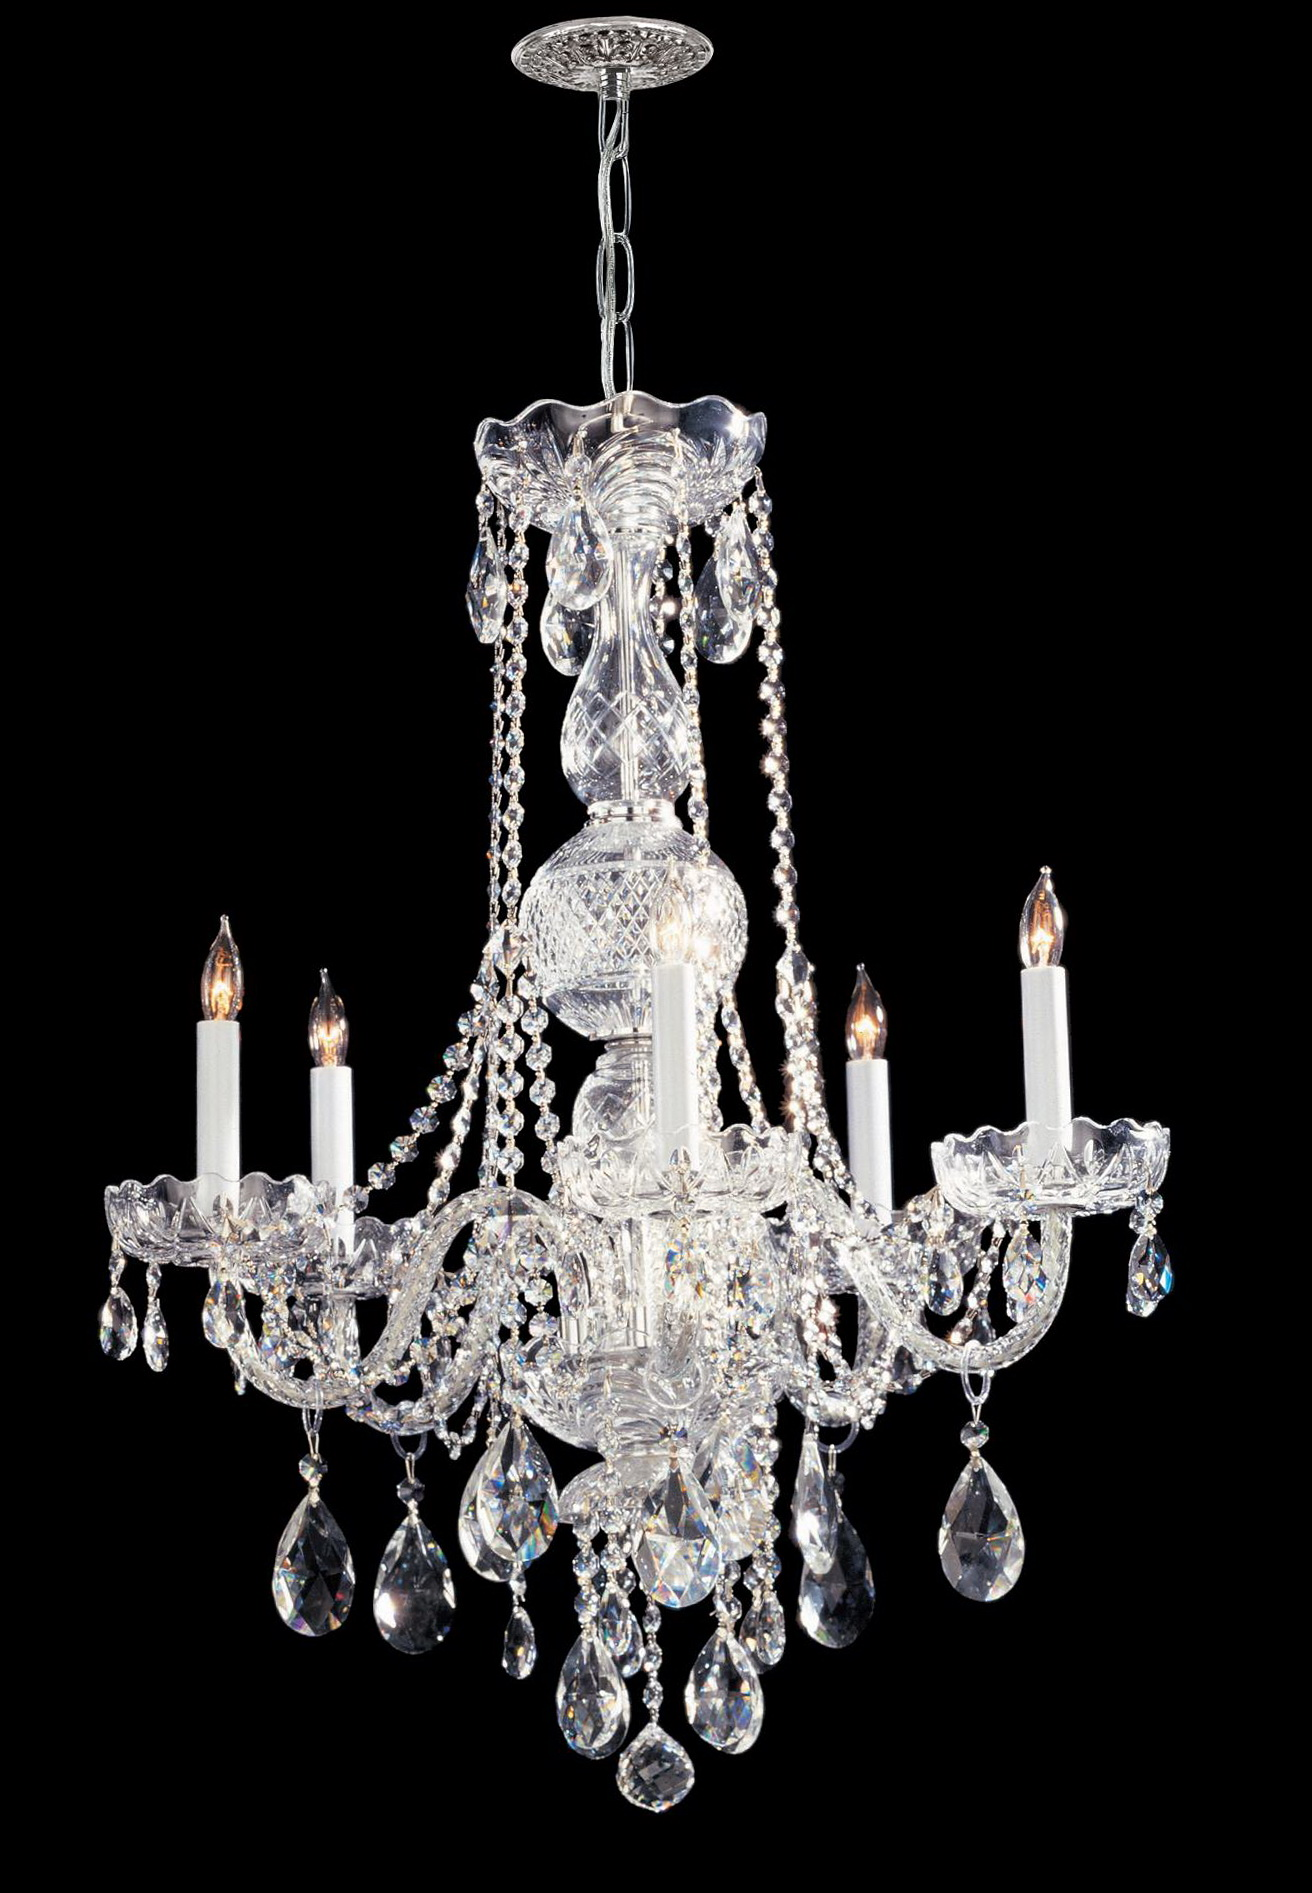 Swarovski Crystal Lighting Democraciaejustica - Chandelier swarovski crystals wholesale